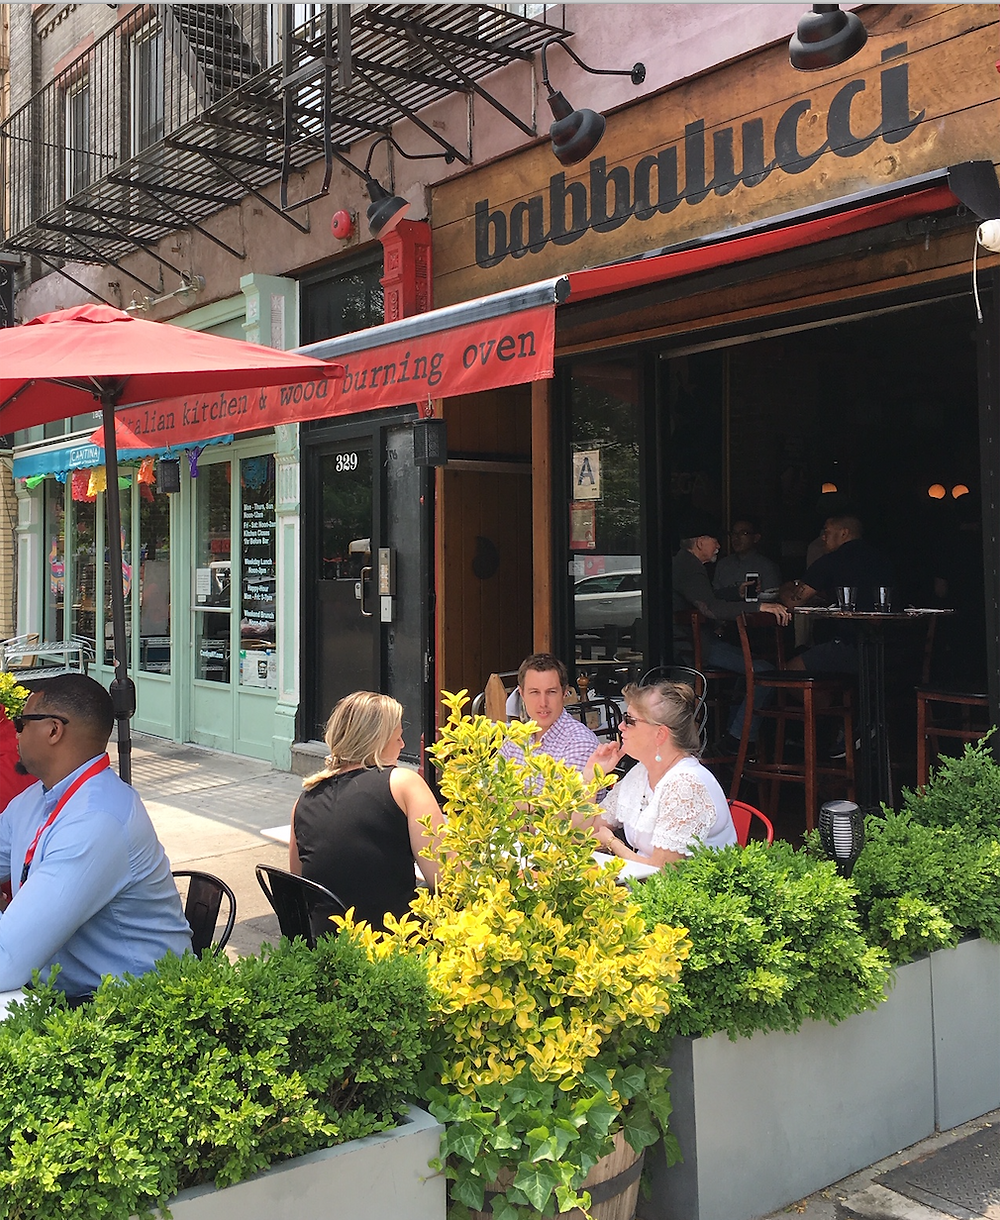 Eat authentic Italian pizza outdoors at Babbalucci in Harlem